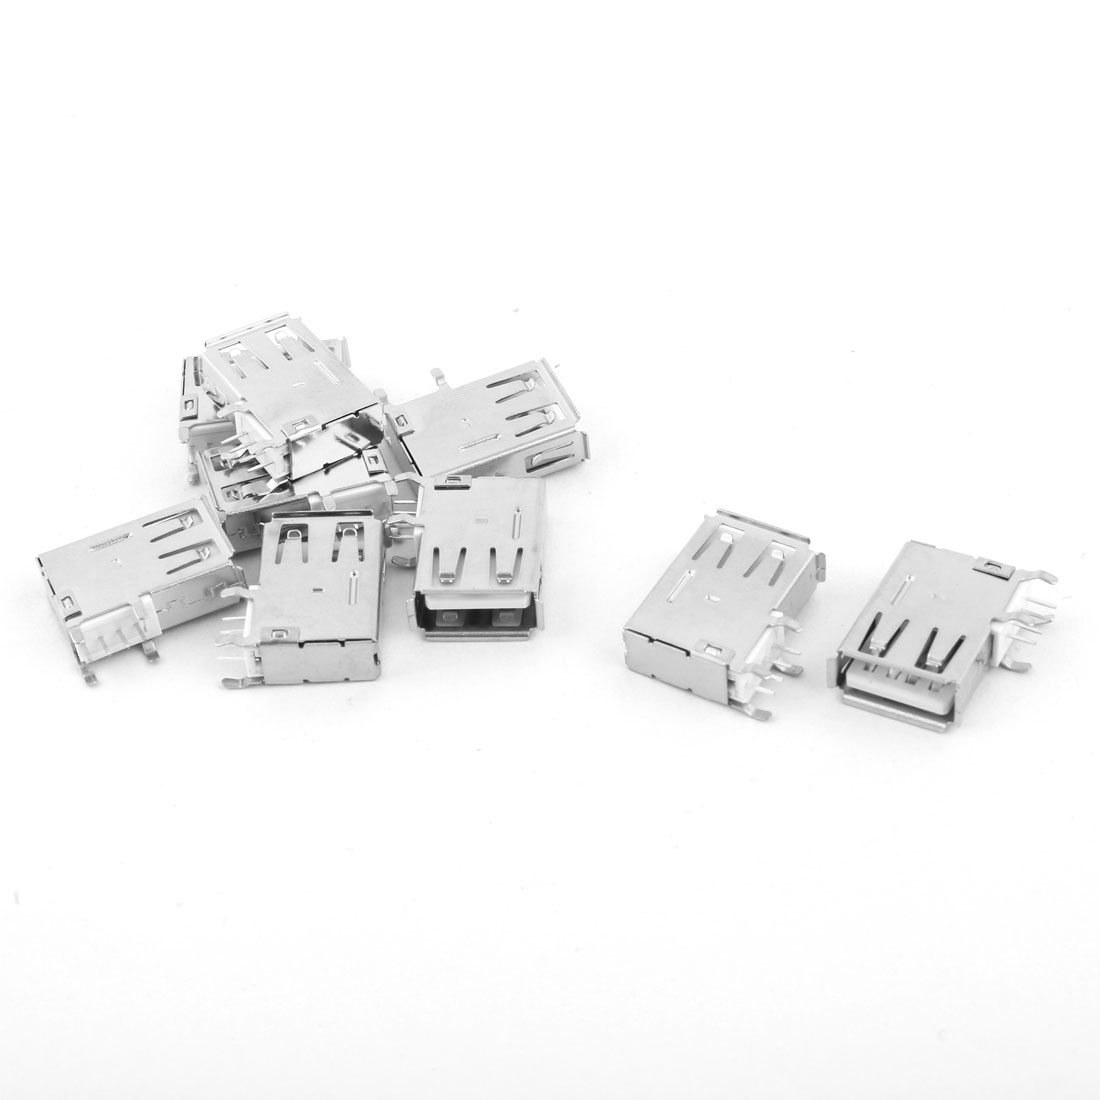 Home DIY USB 2.0 Port Type A Female Socket Connectors 9pcs for PCB